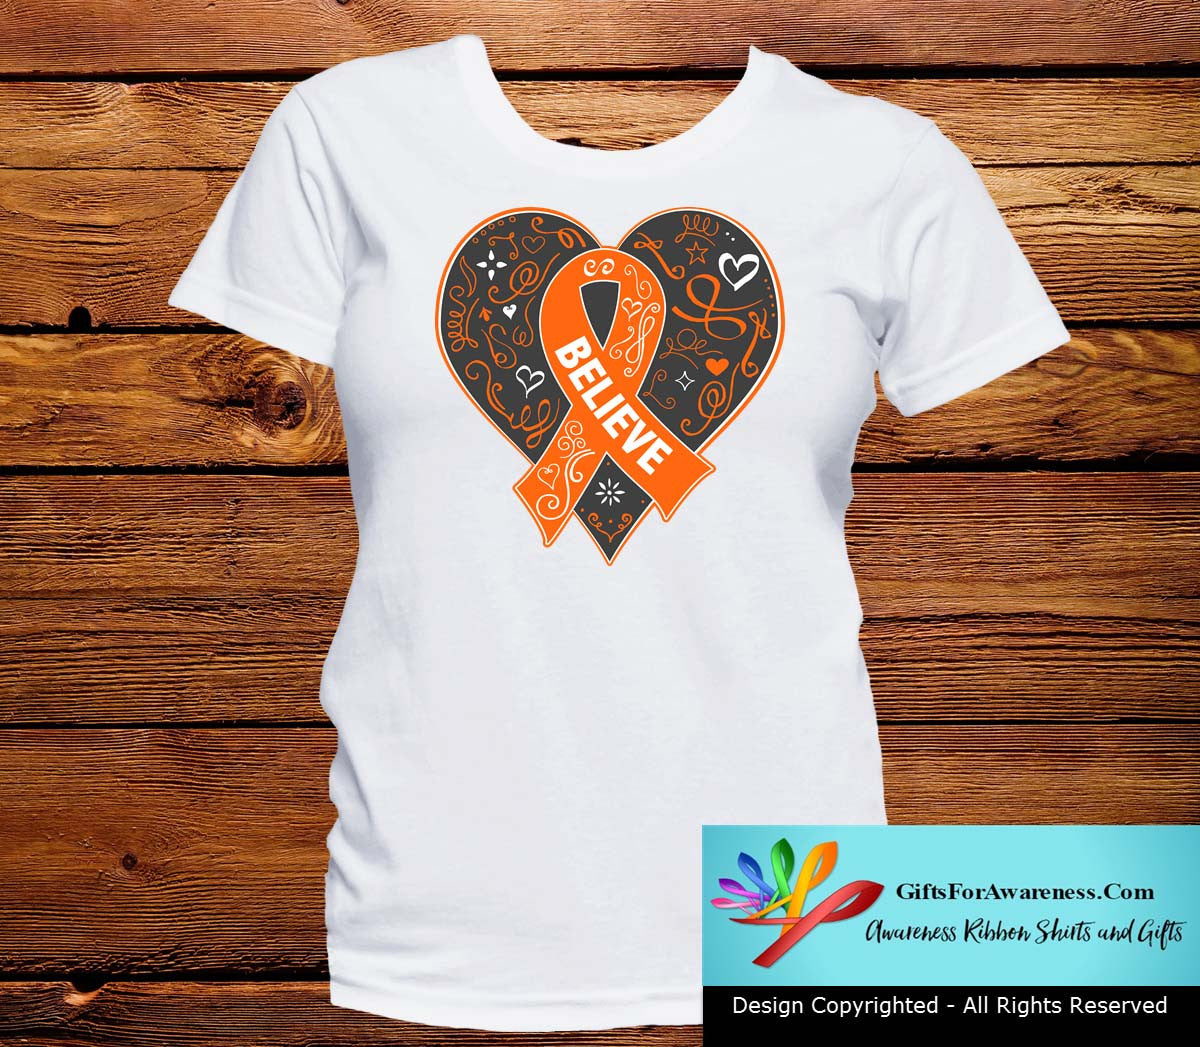 COPD Believe Heart Ribbon Shirts - GiftsForAwareness